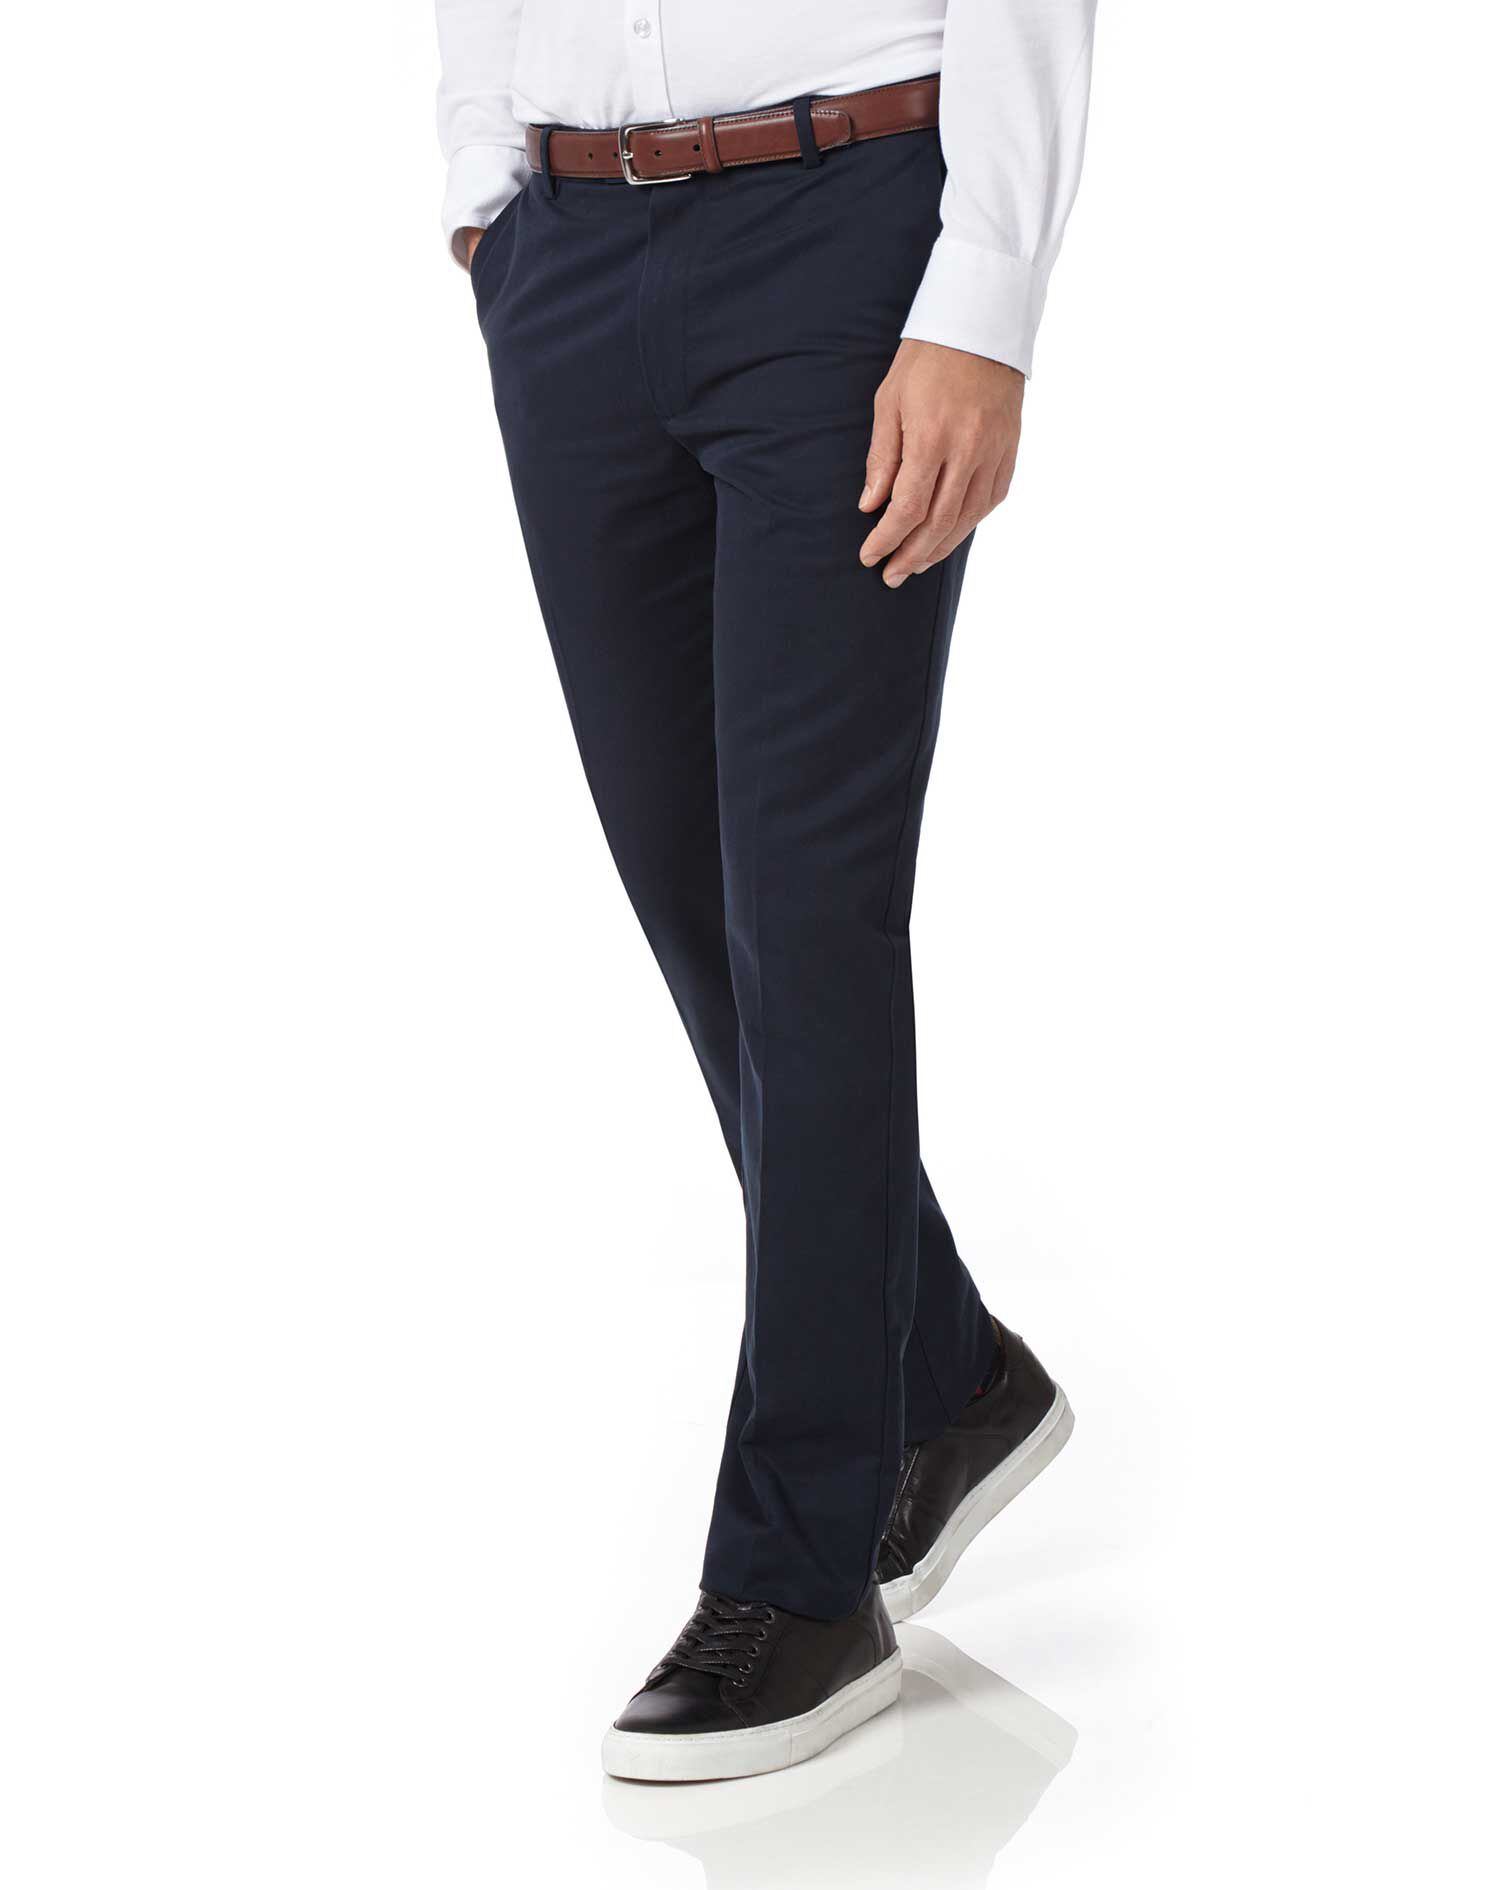 Navy Extra Slim Fit Flat Front Non-Iron Cotton Chino Trousers Size W30 L34 by Charles Tyrwhitt